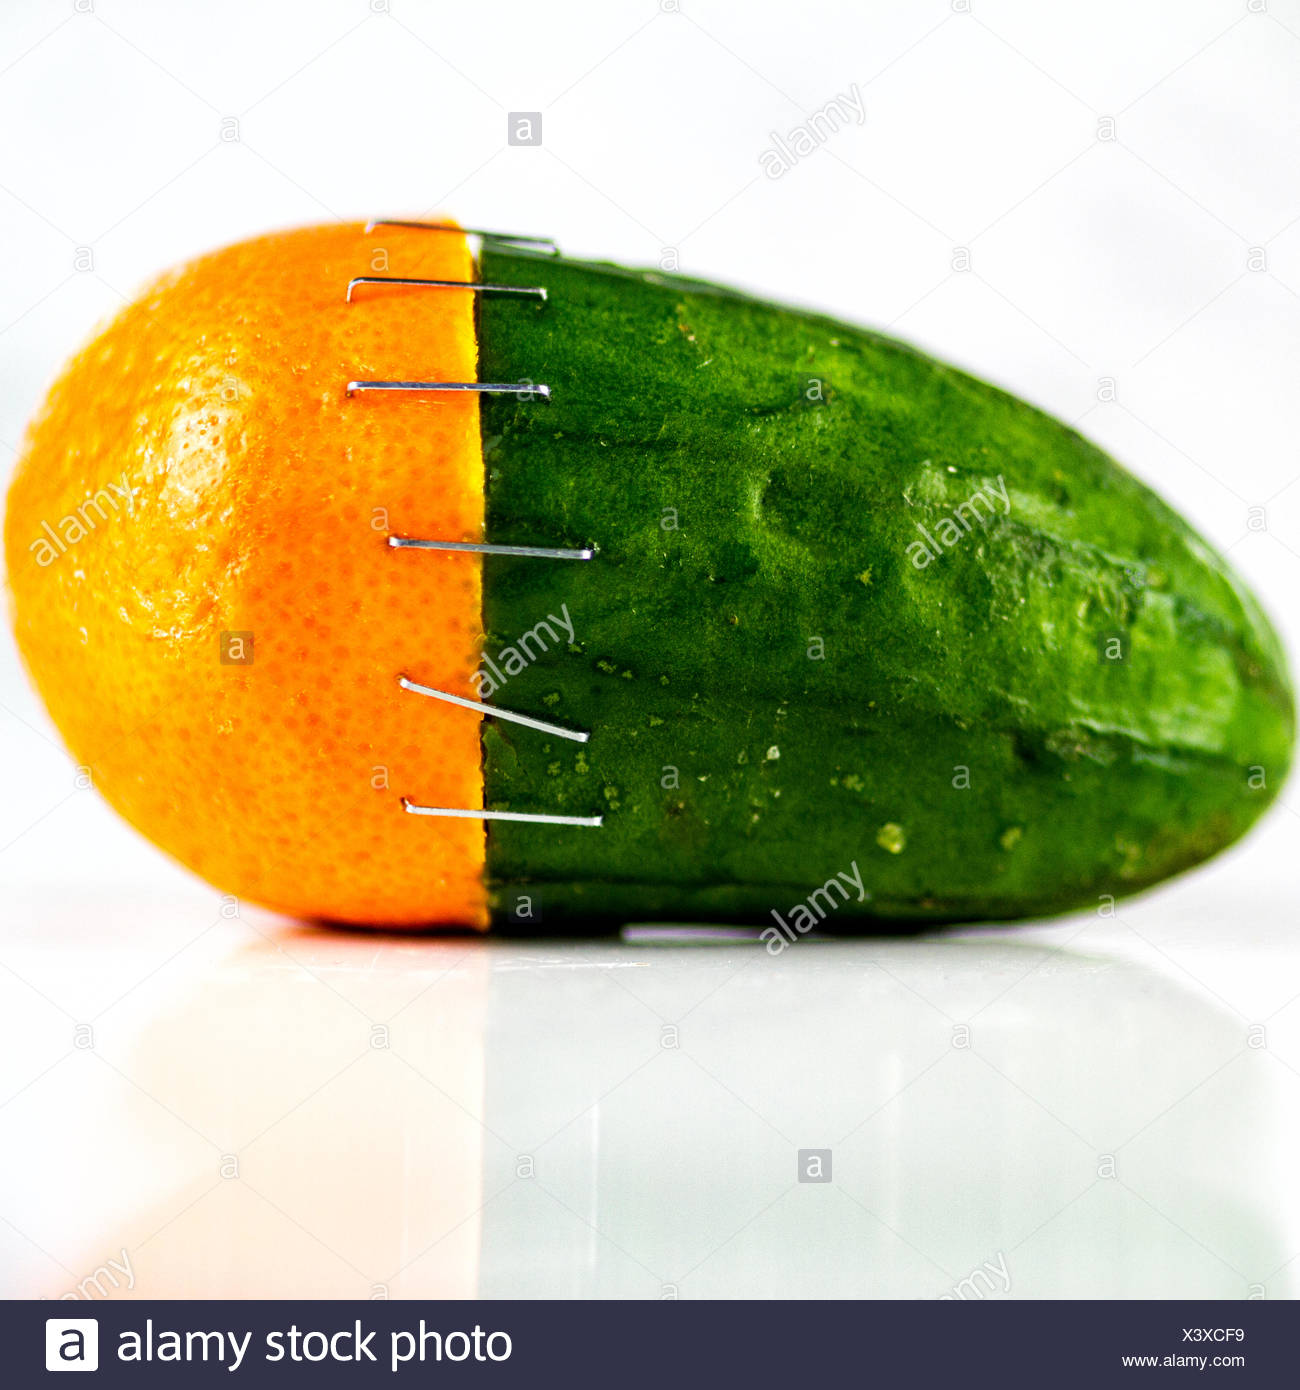 Orange and cucumber stapled together - Stock Image